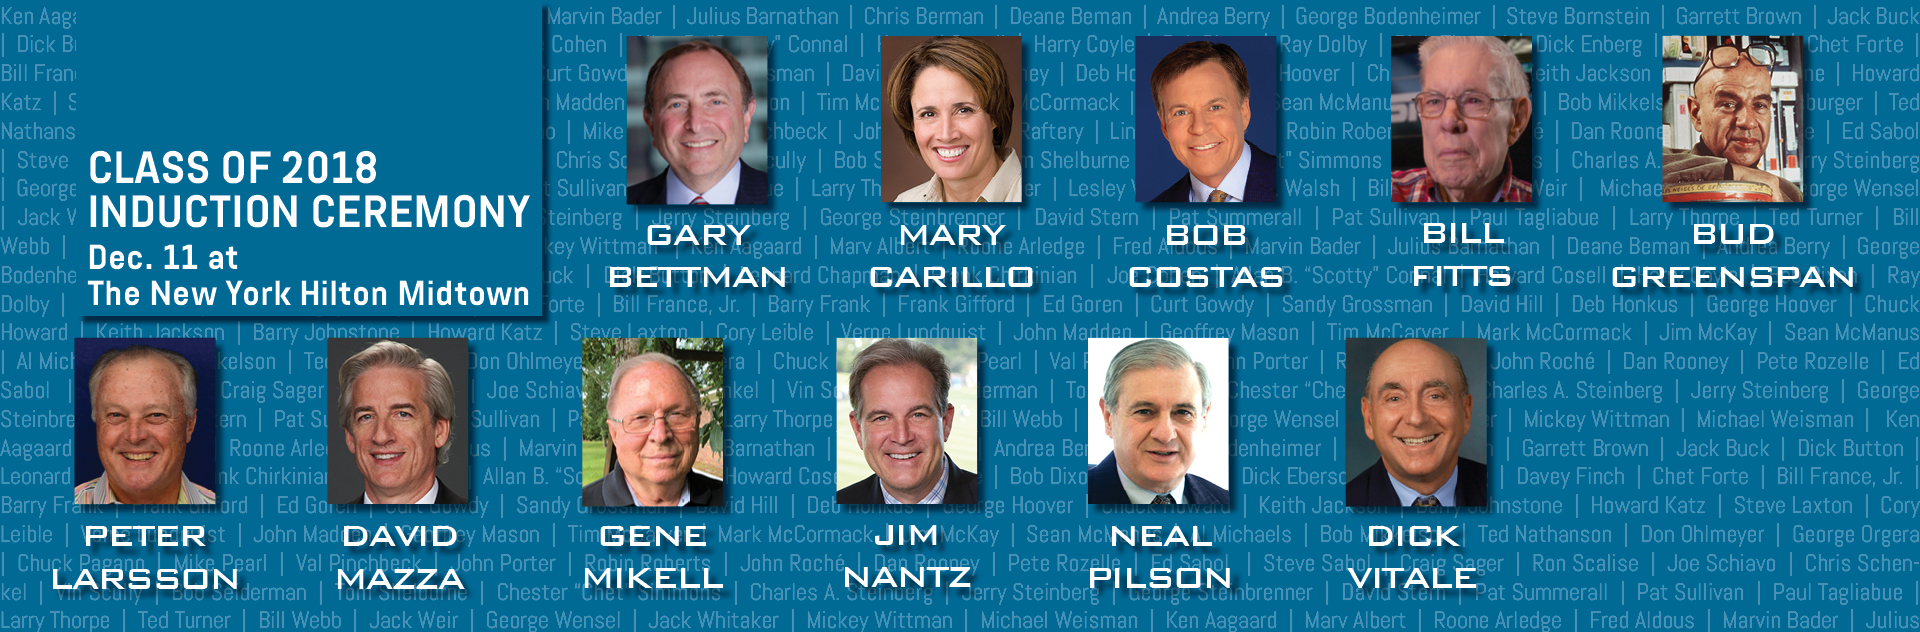 Sports Broadcasting Hall of Fame Announces Class of 2018